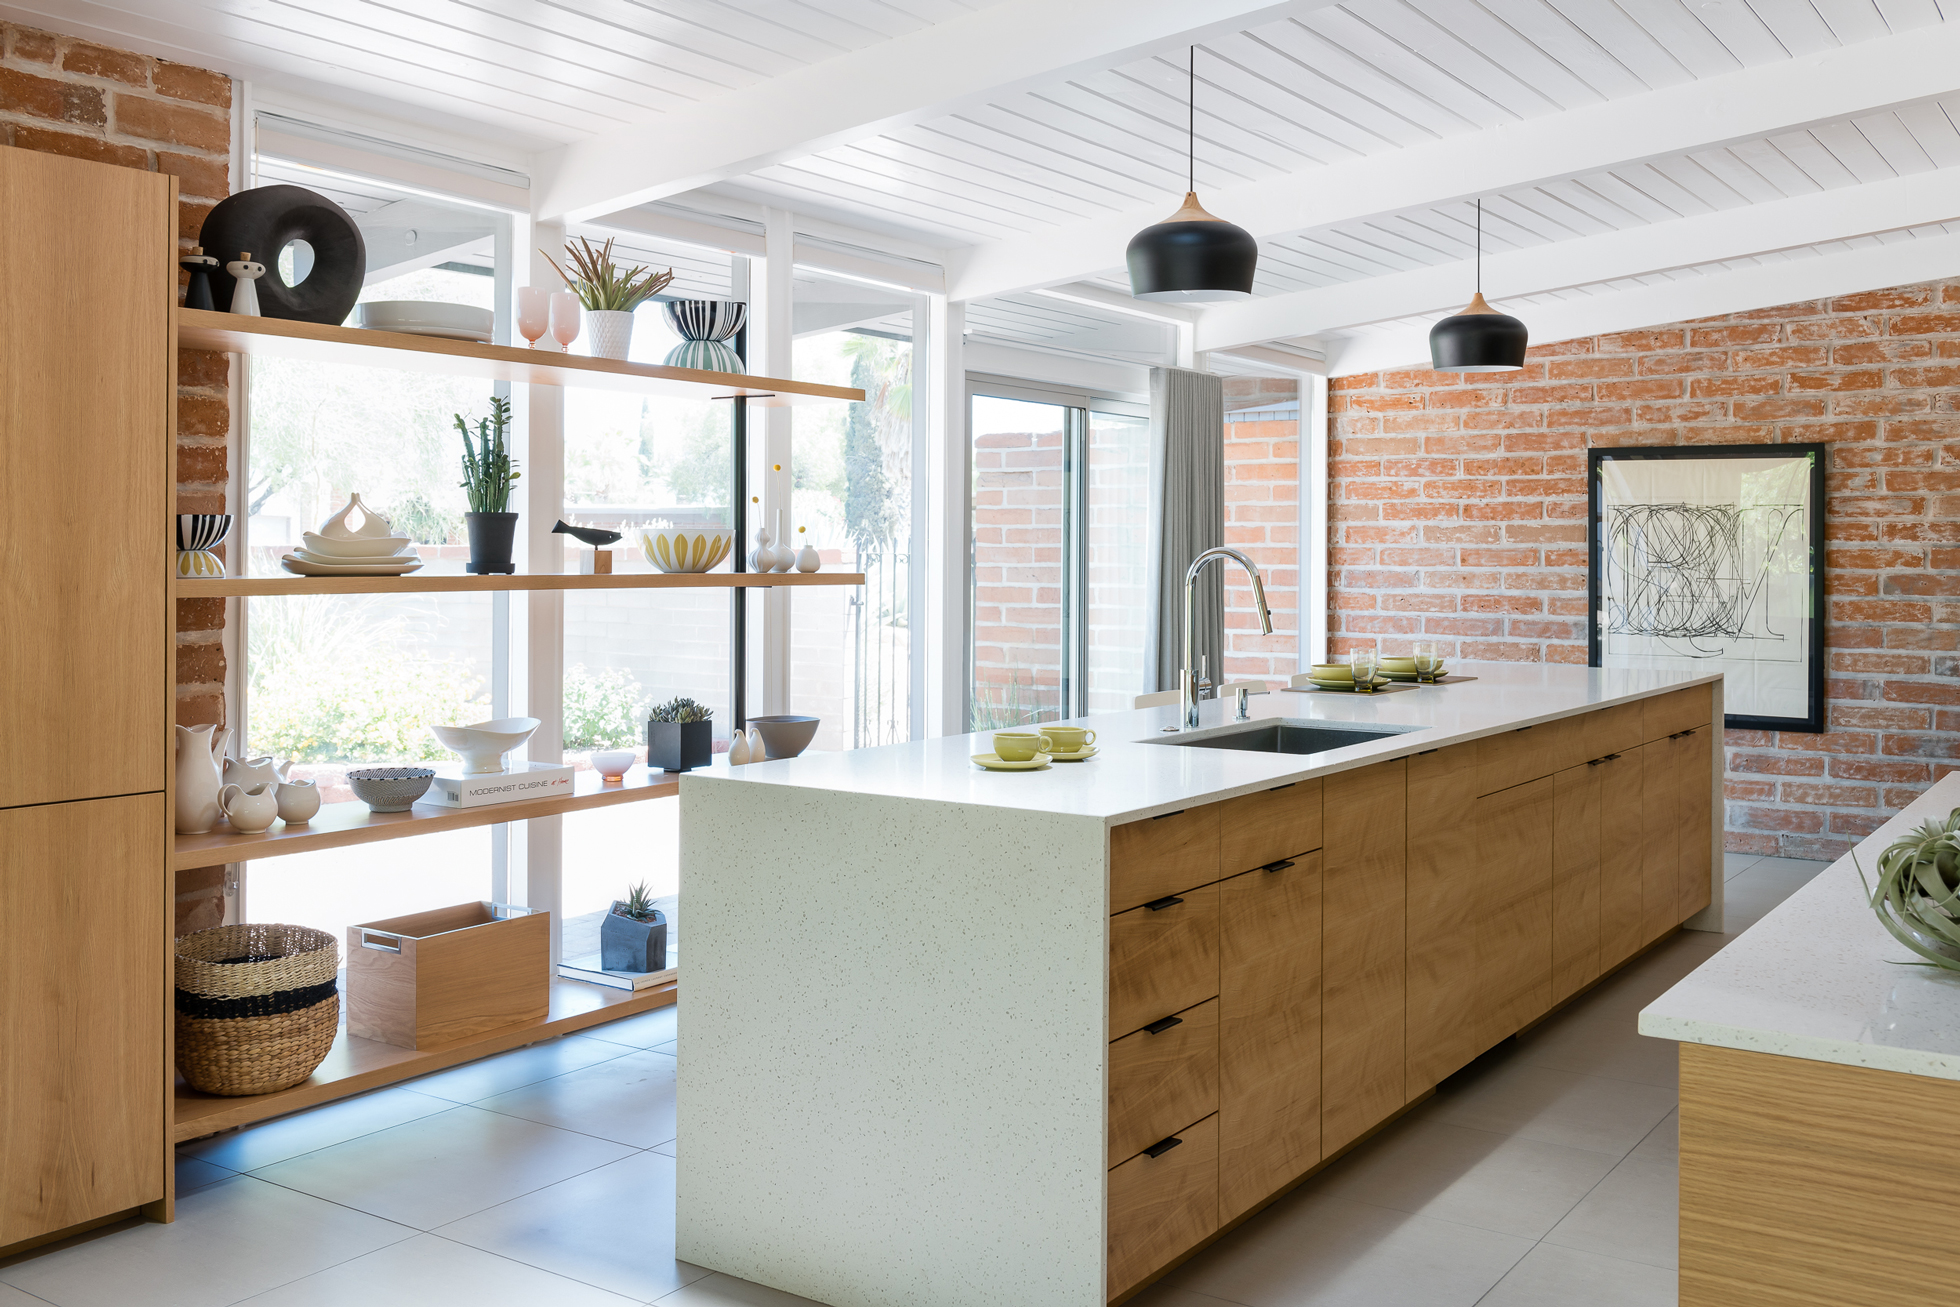 A bright kitchen with open shelving and wall of windows